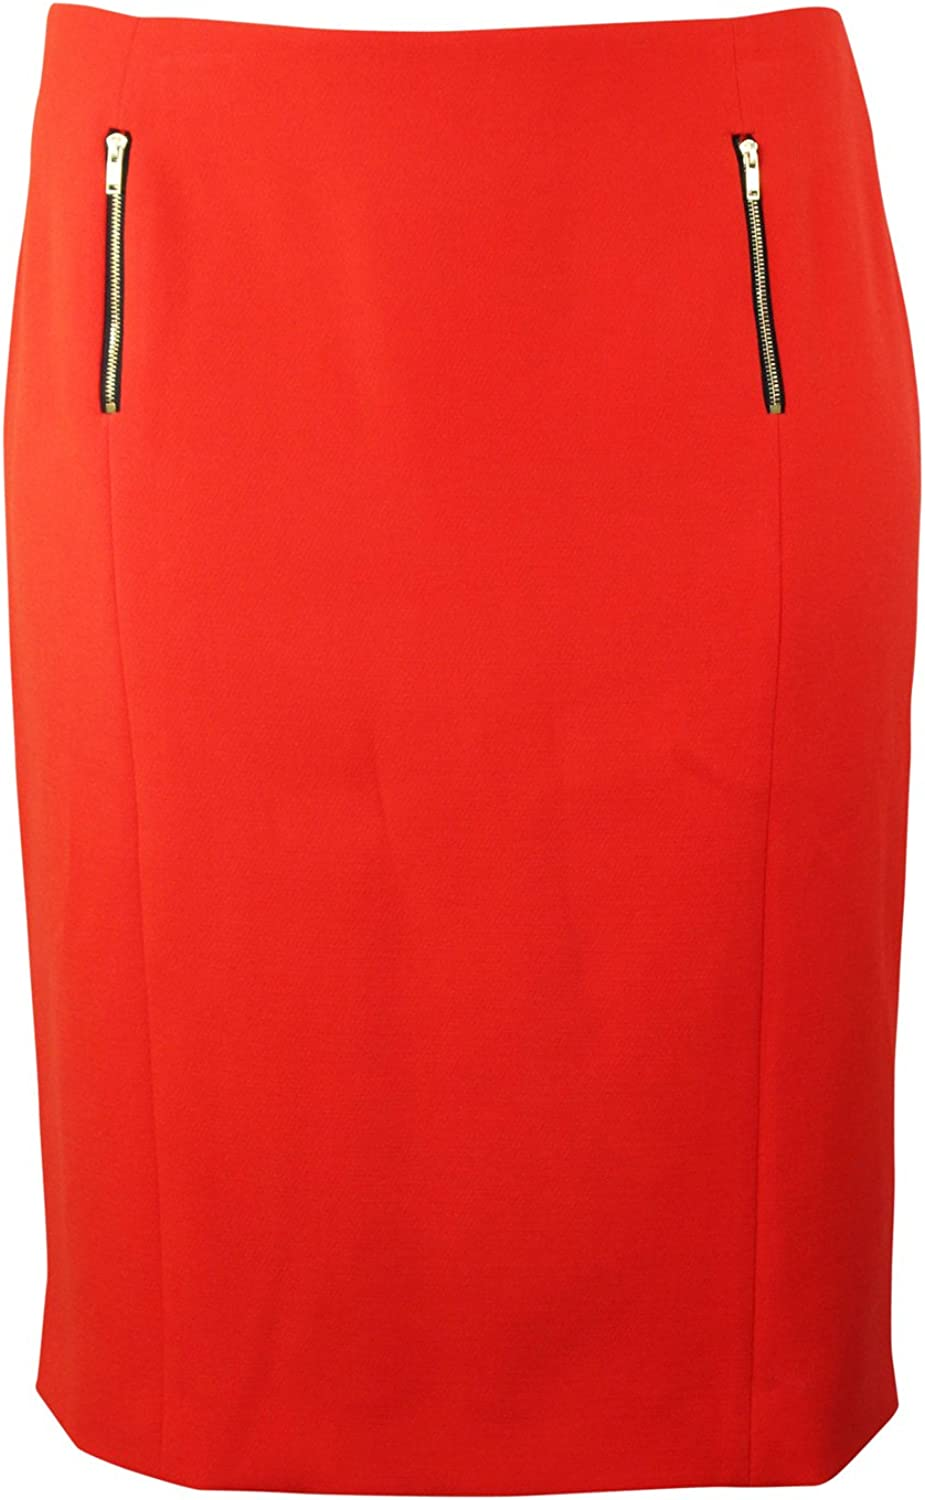 Natan+ Womens Straight Pencil Skirt Plus Size Coral 50,52